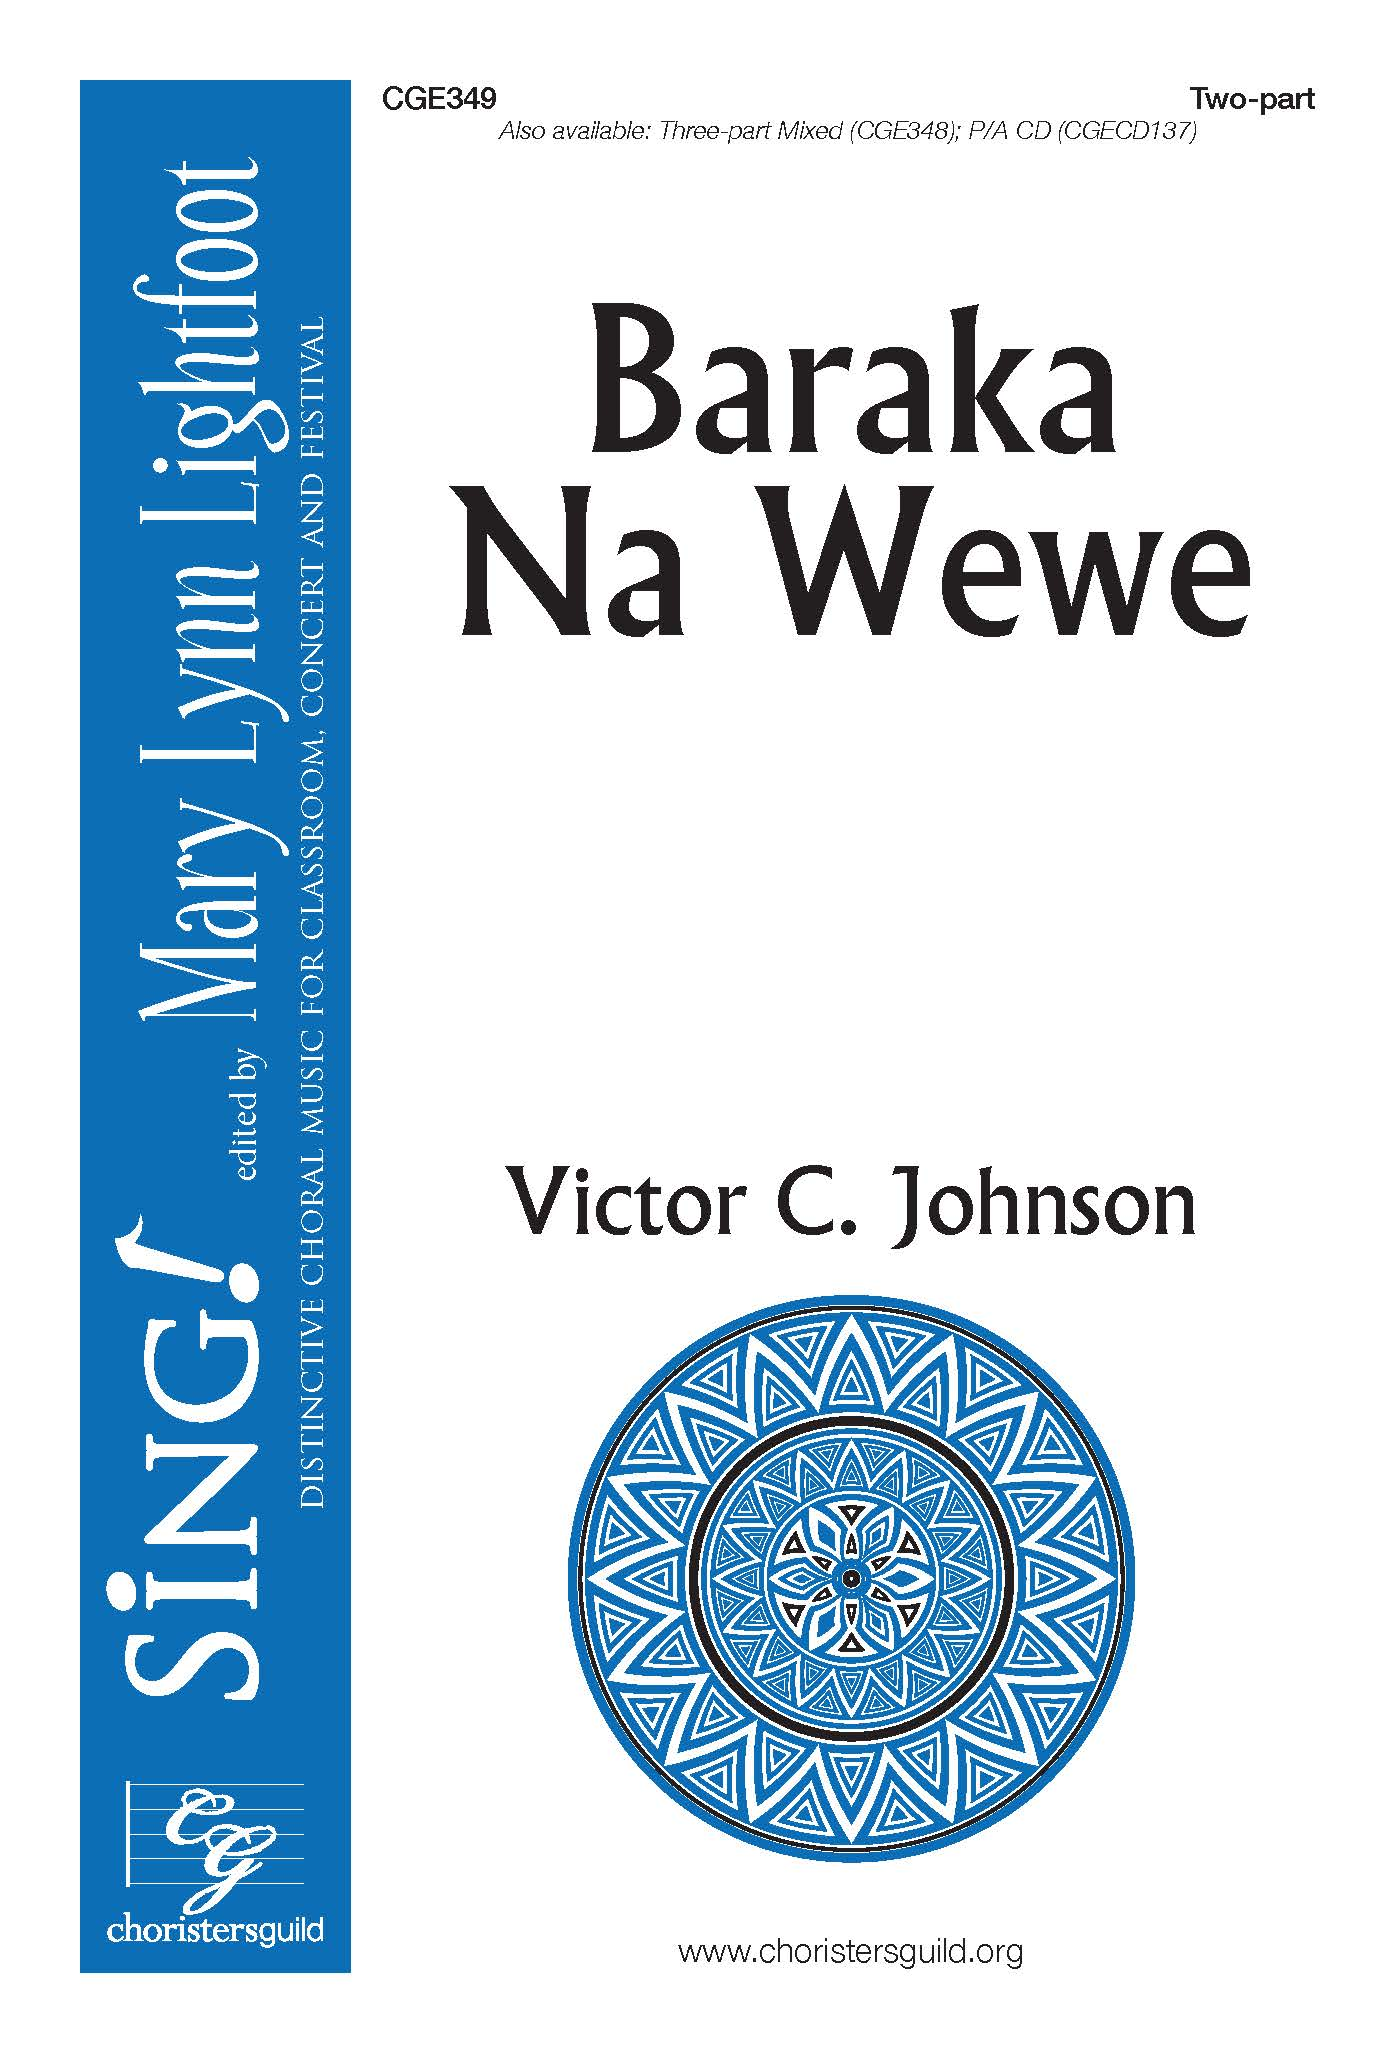 Baraka Na Wewe - Two-part